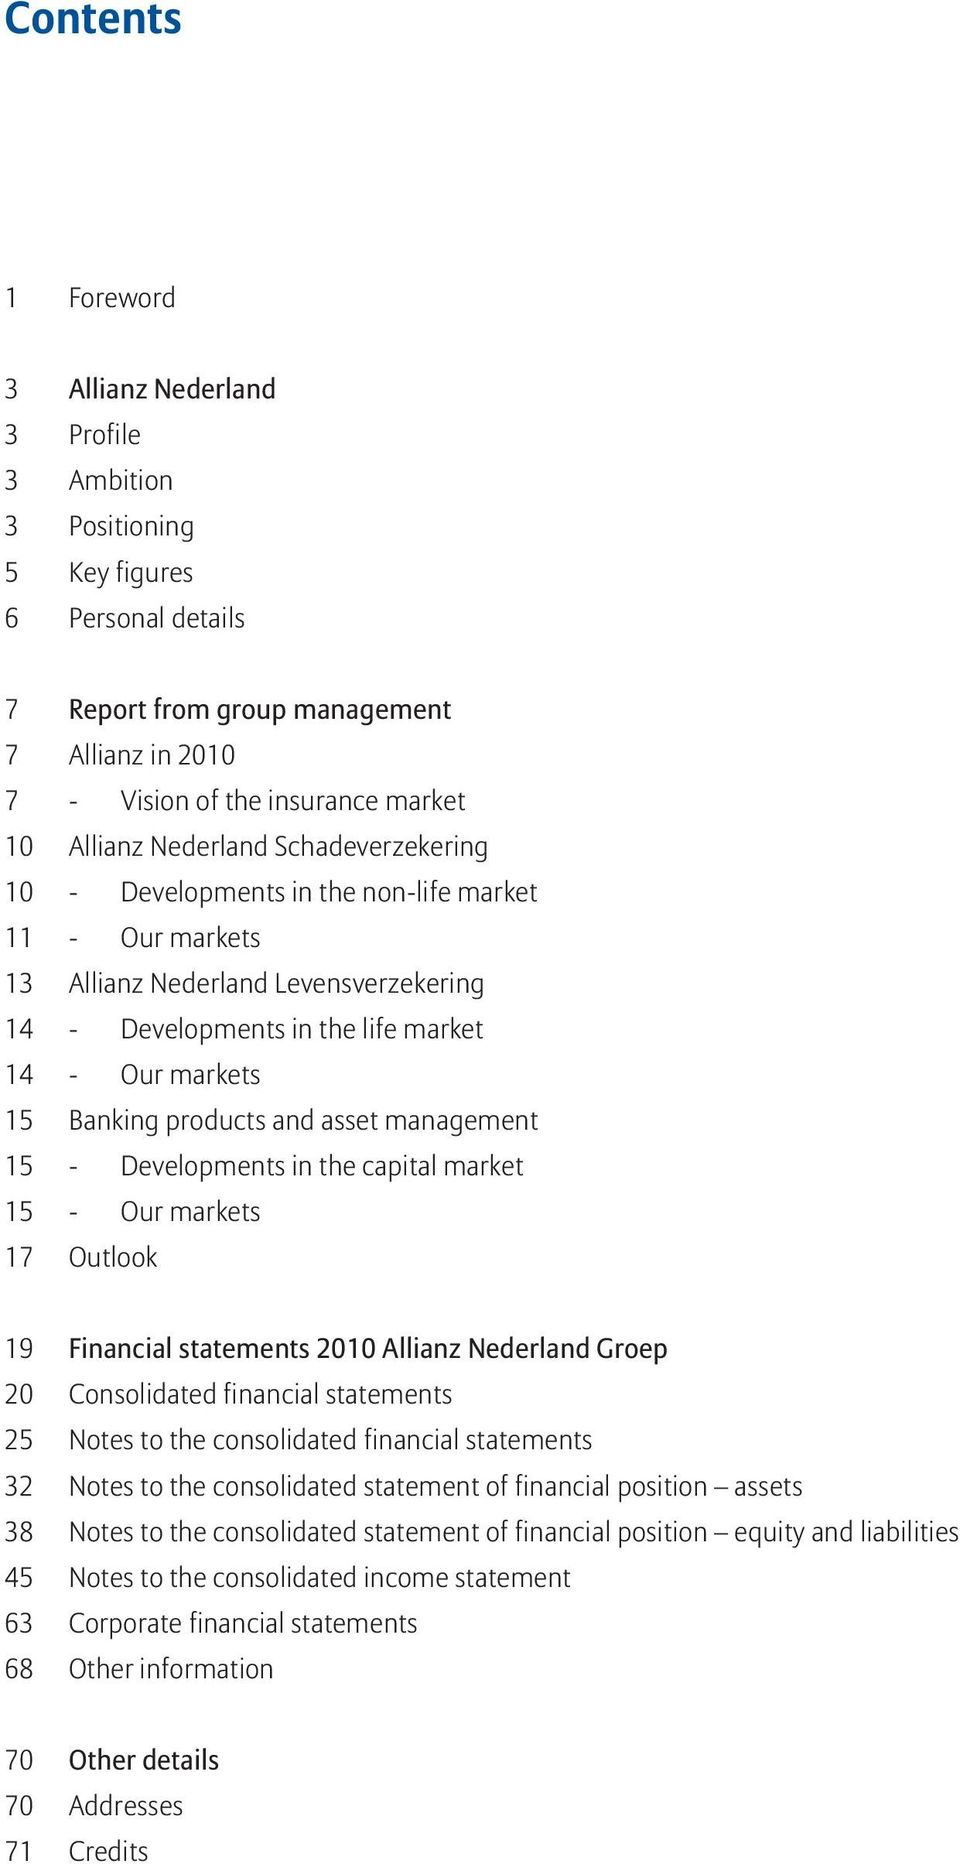 and asset management 15 - Developments in the capital market 15 - Our markets 17 Outlook 19 Financial statements Allianz Nederland Groep 20 Consolidated financial statements 25 Notes to the